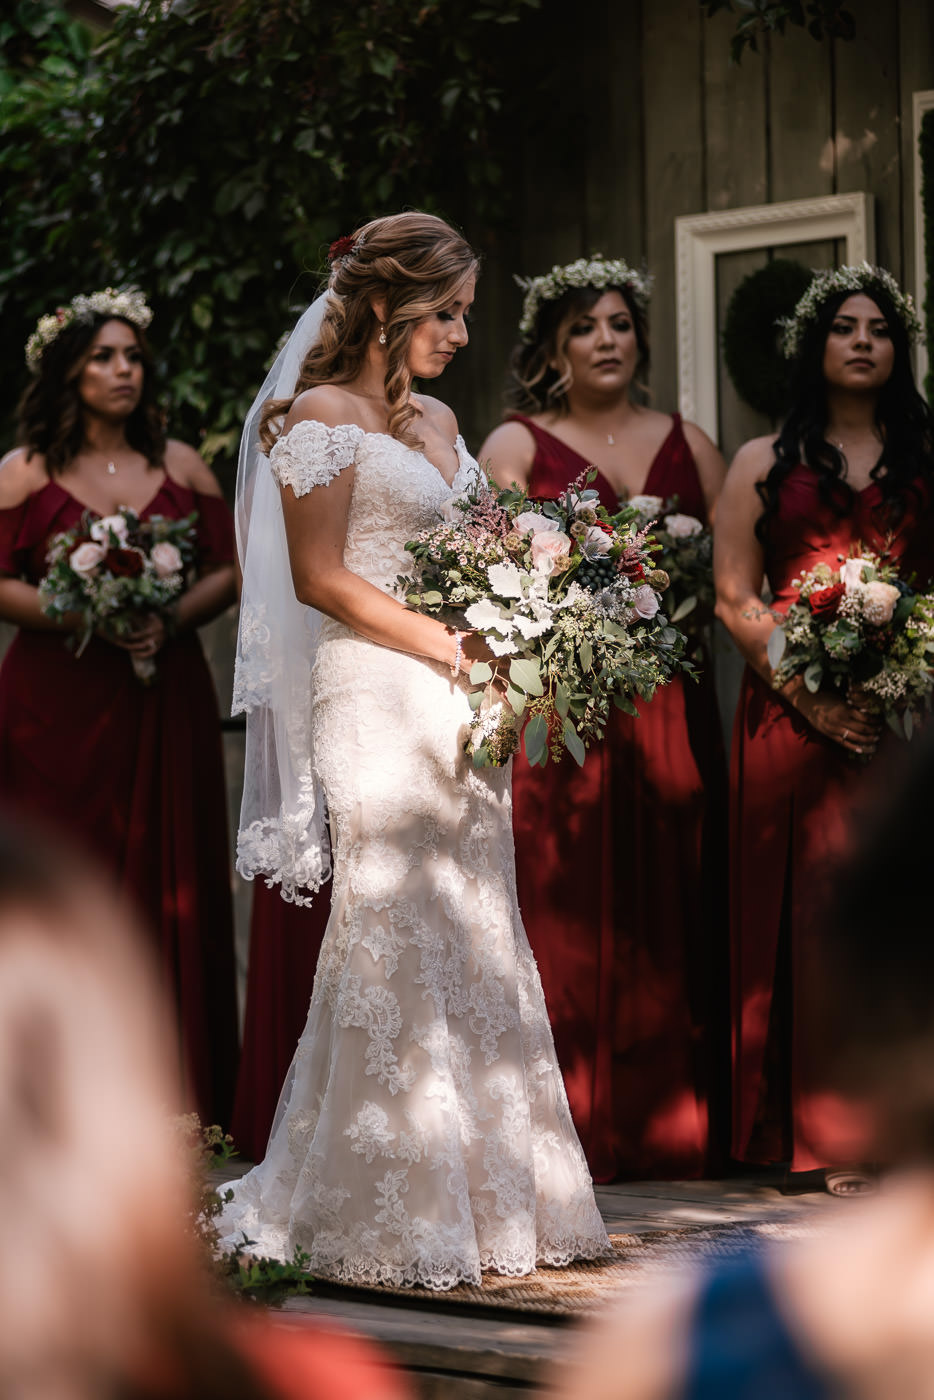 Beautiful bride holds her bouquet and prepares to say her vows.